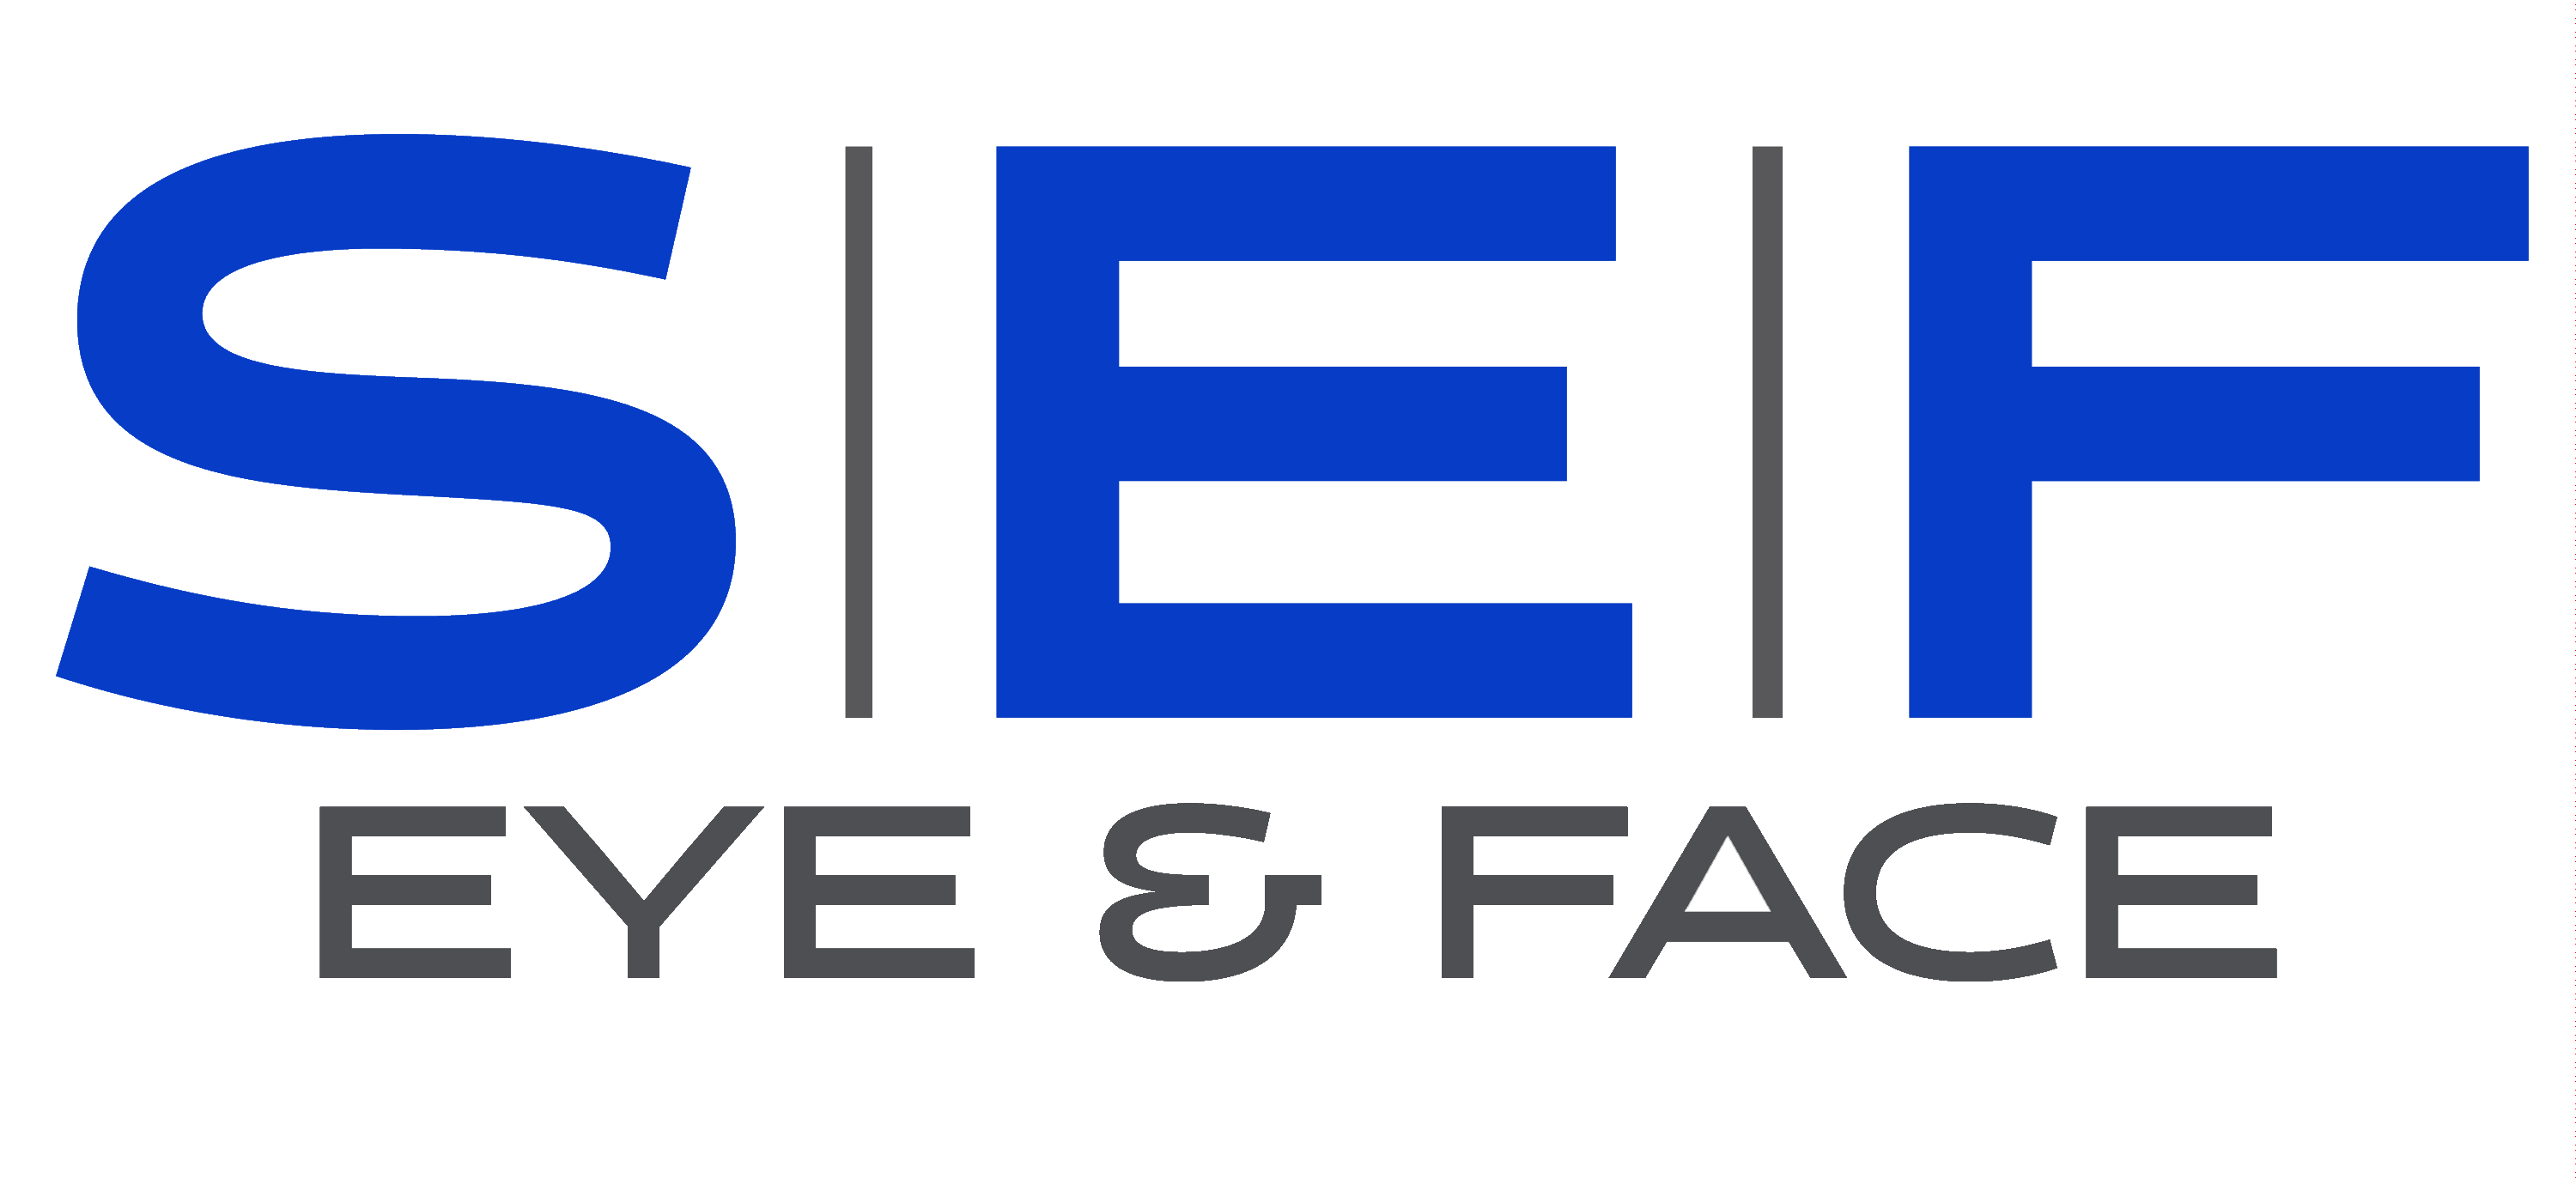 Schlessinger Eye & Face reviews | Cosmetic Surgeons at 75 Froehlich Farm Blvd - Woodbury NY